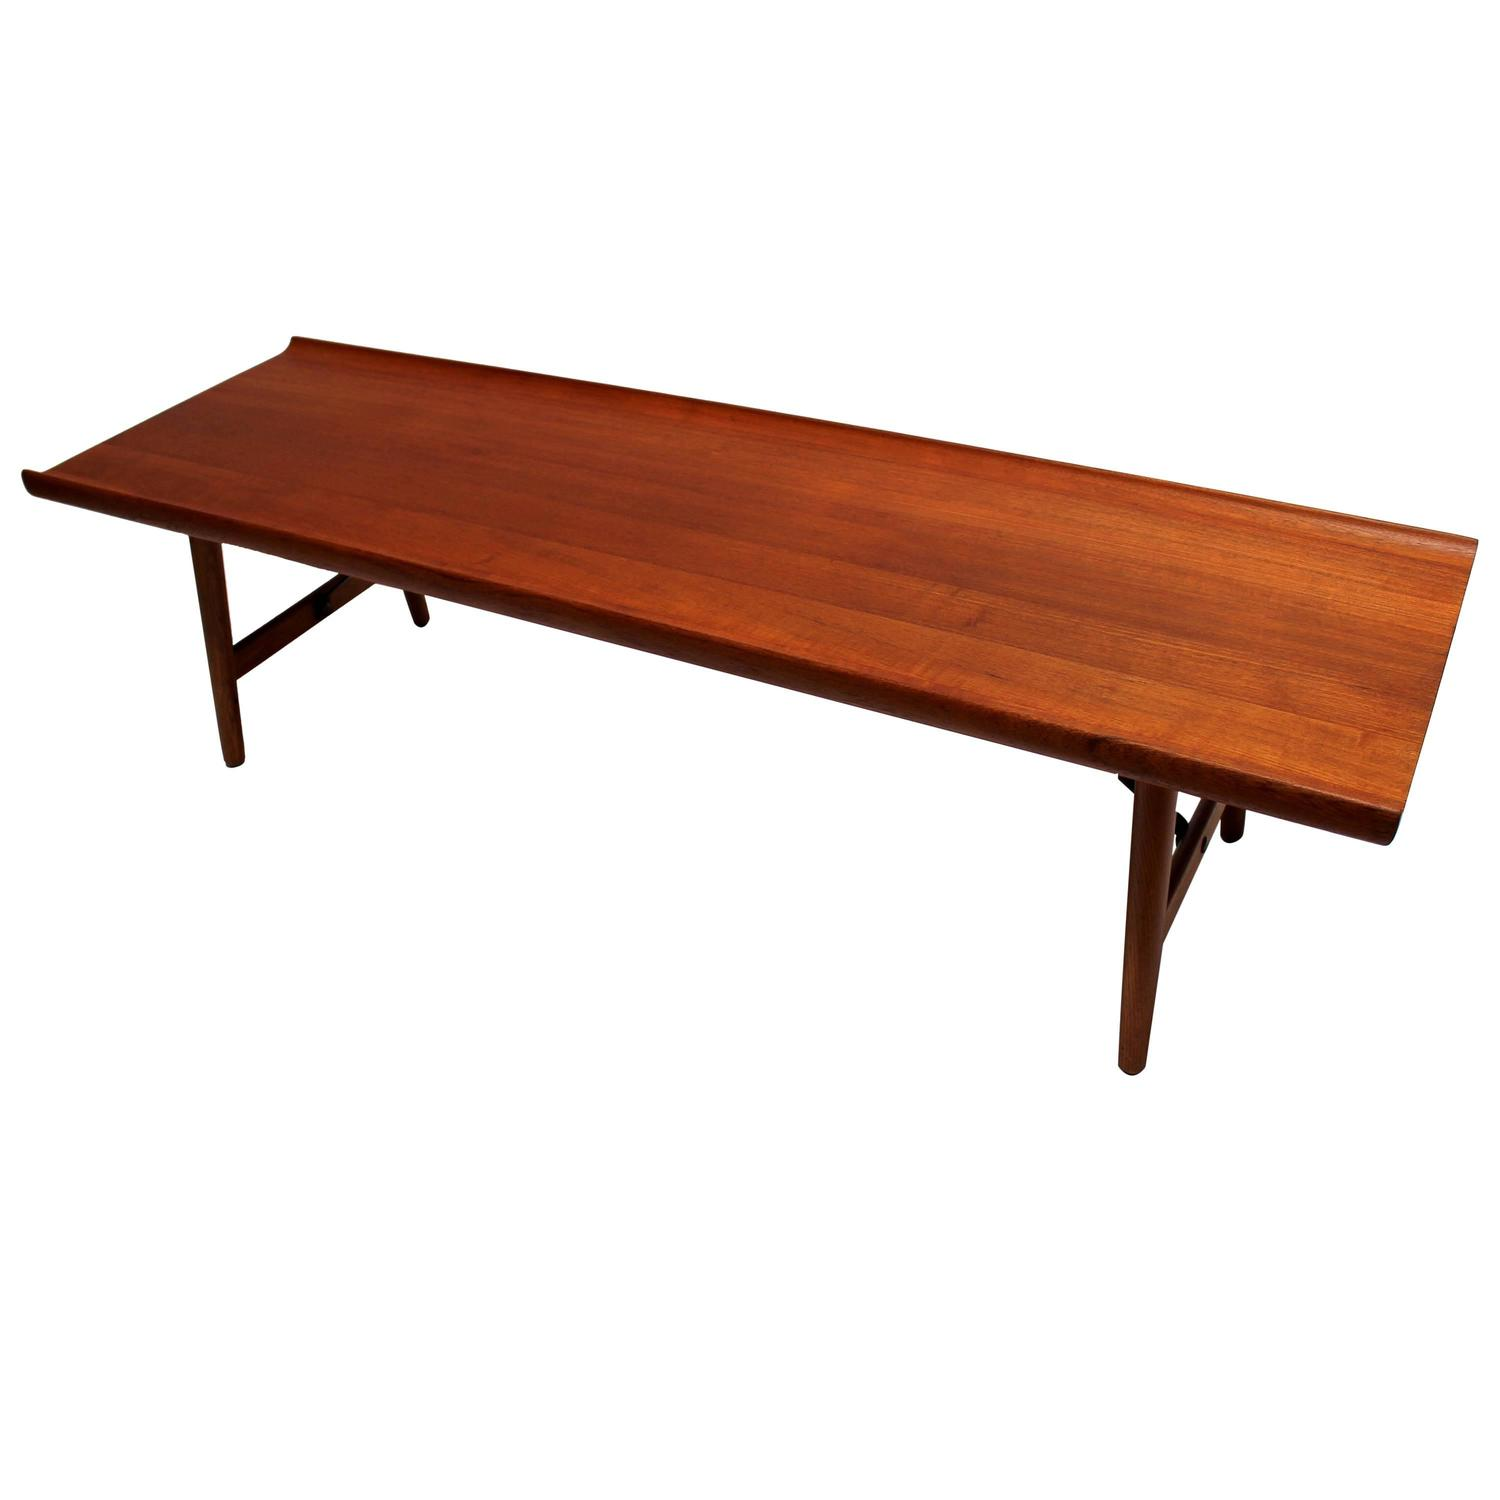 Danish modern solid teak coffee table by b rge mogensen for s borg m belfabrik at 1stdibs Solid teak coffee table